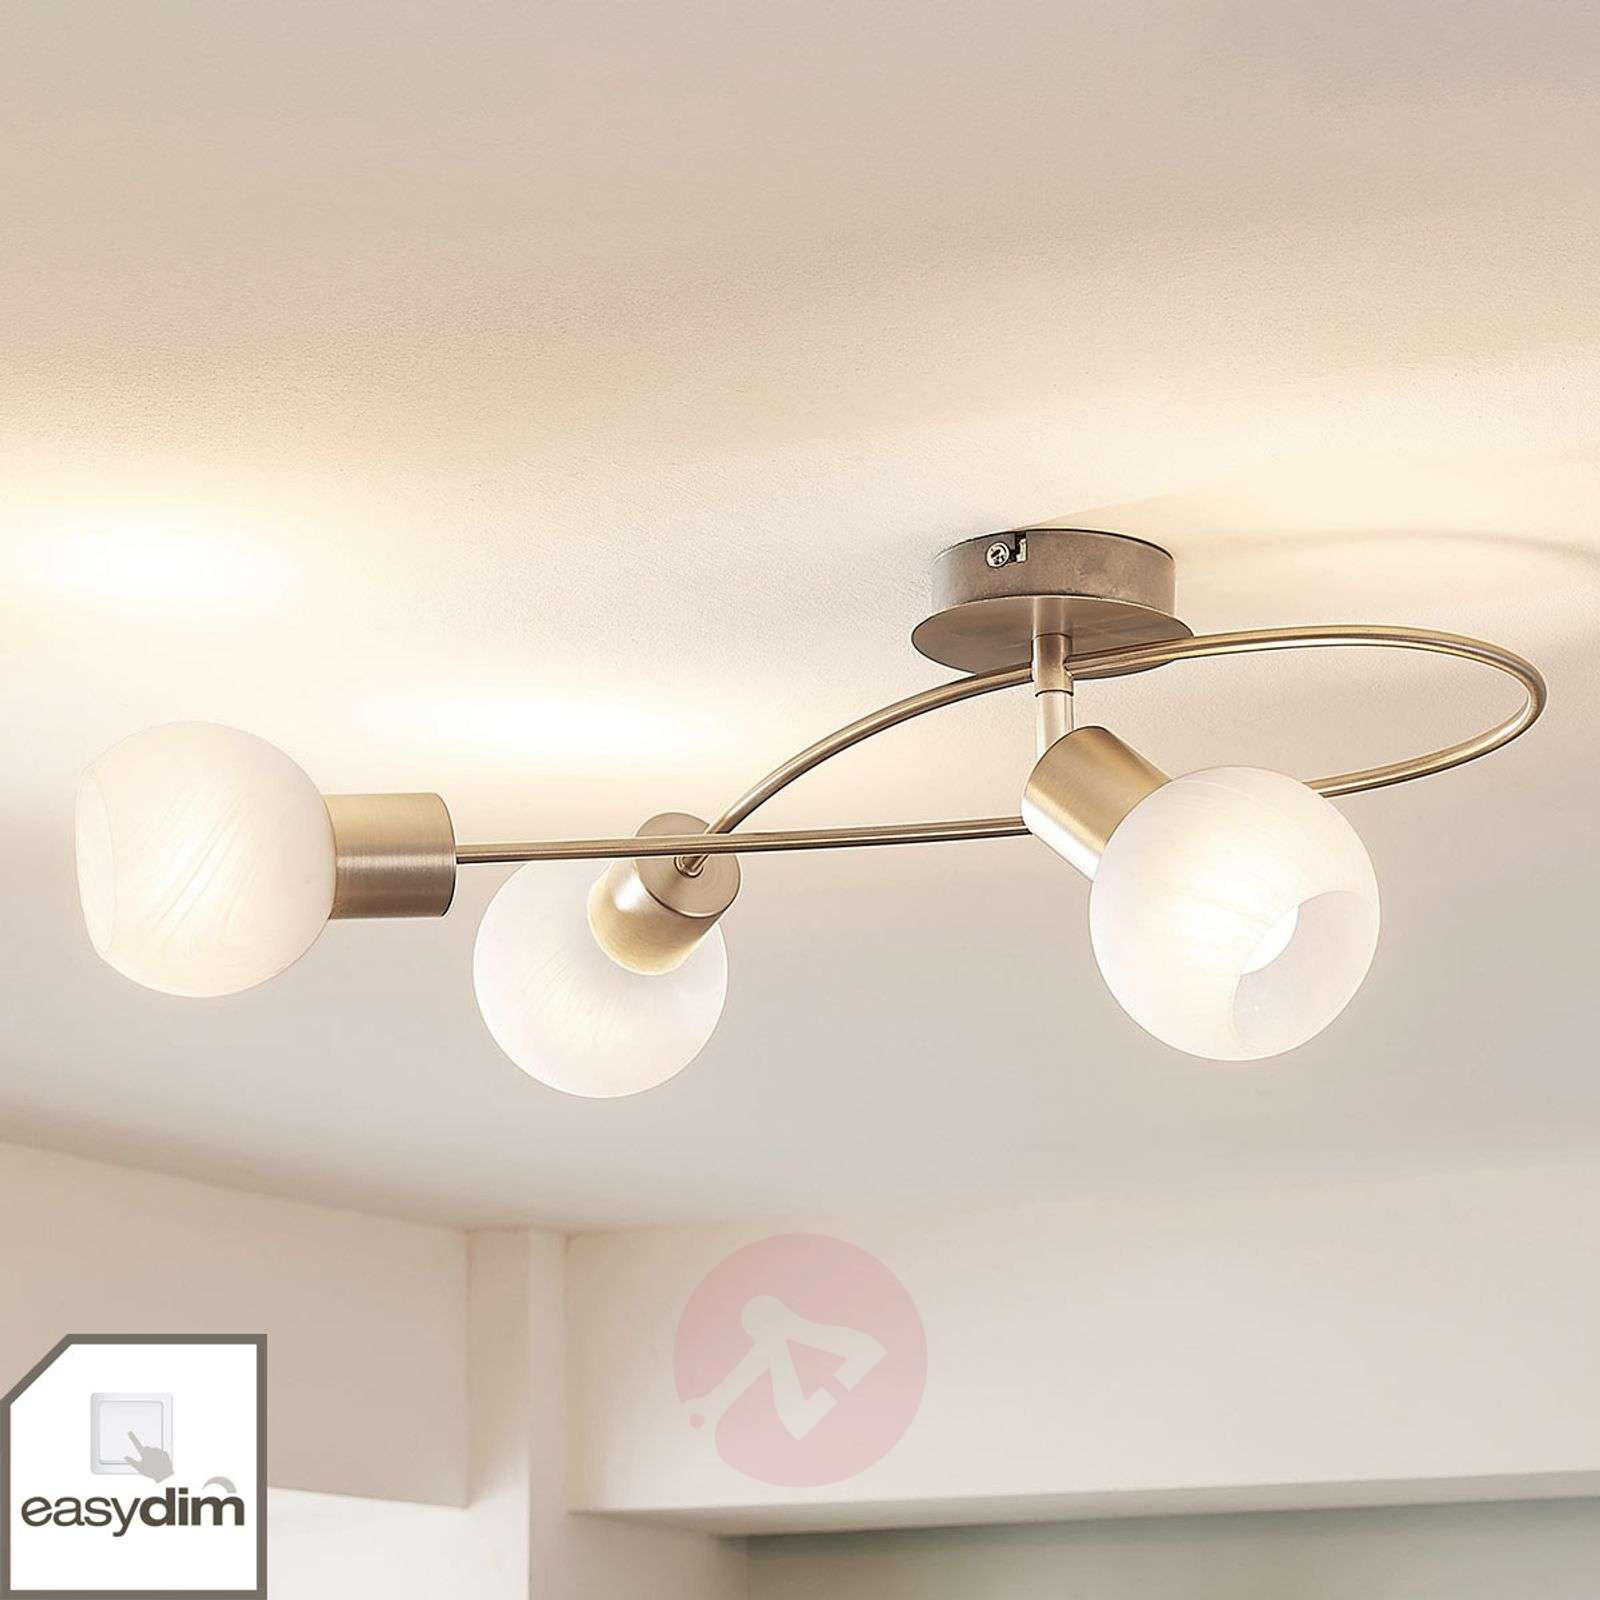 Dimmable LED ceiling light Tanos, matt nickel-9621567-03